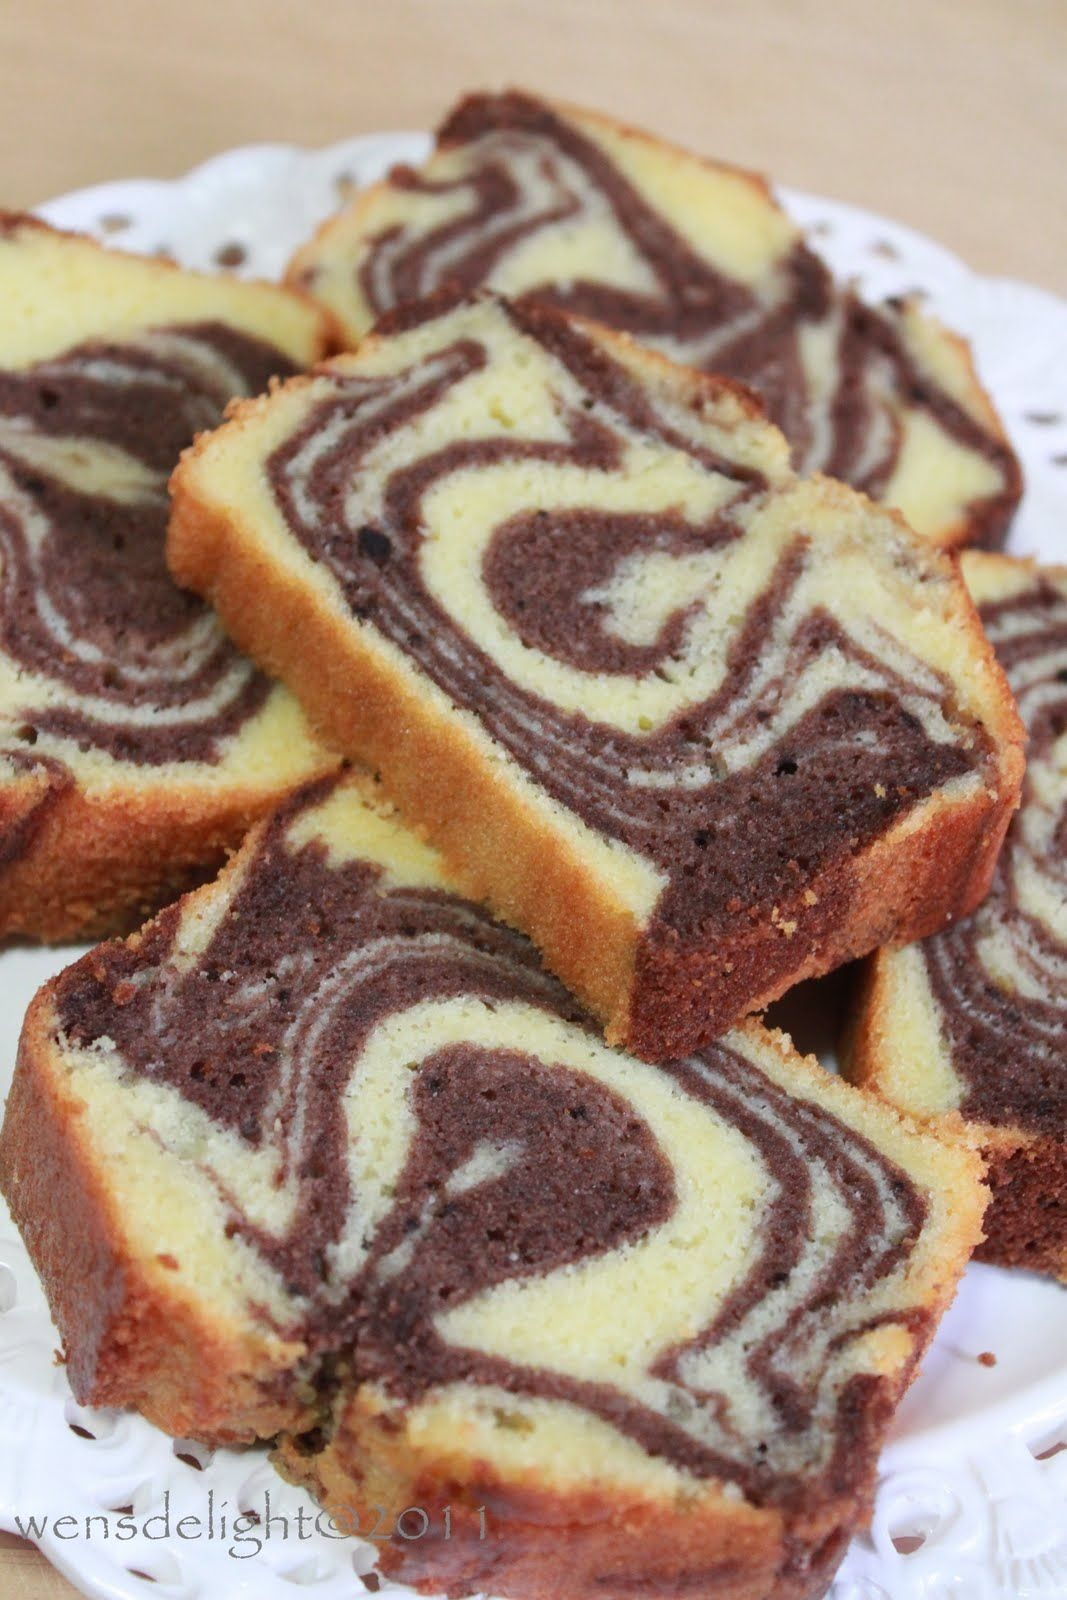 How To Cook Marble Cake Recipe Marble Cake Recipes Cake Recipes Desserts